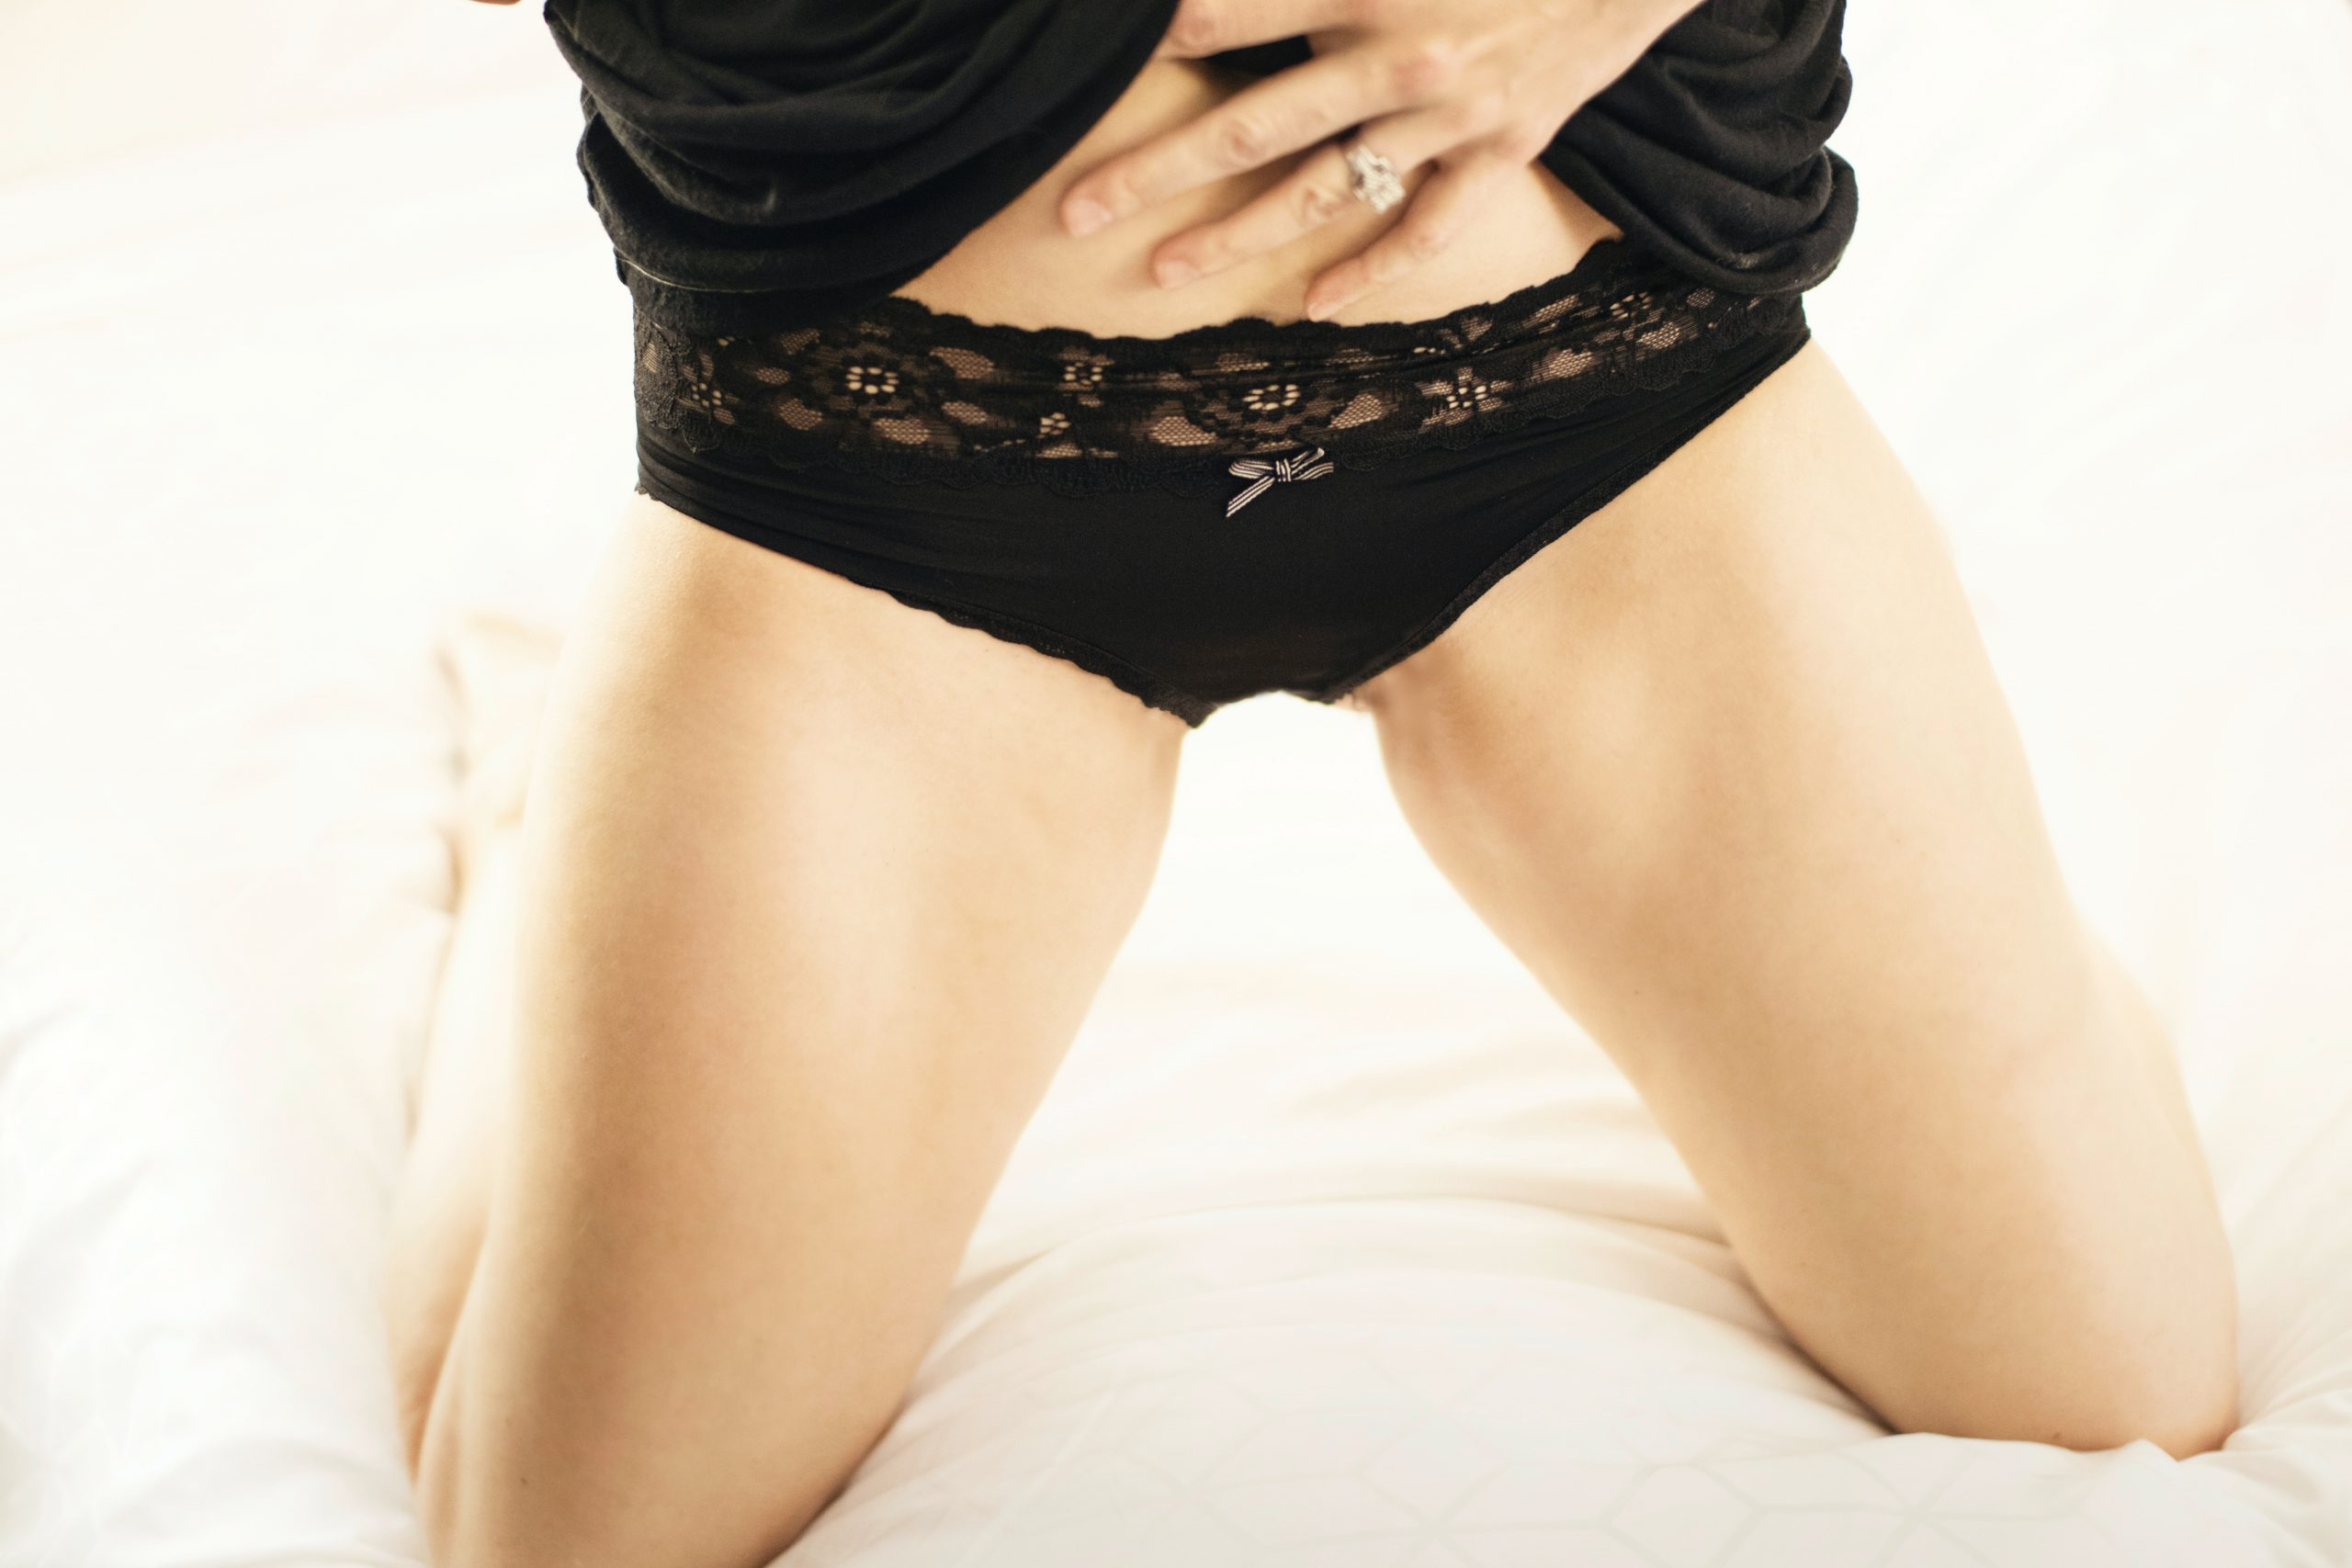 Young woman in black lacy lingerie kneeling on a white hotel bed bares her stomach, her hand teasing the waistband of her underwear against her flat stomach.